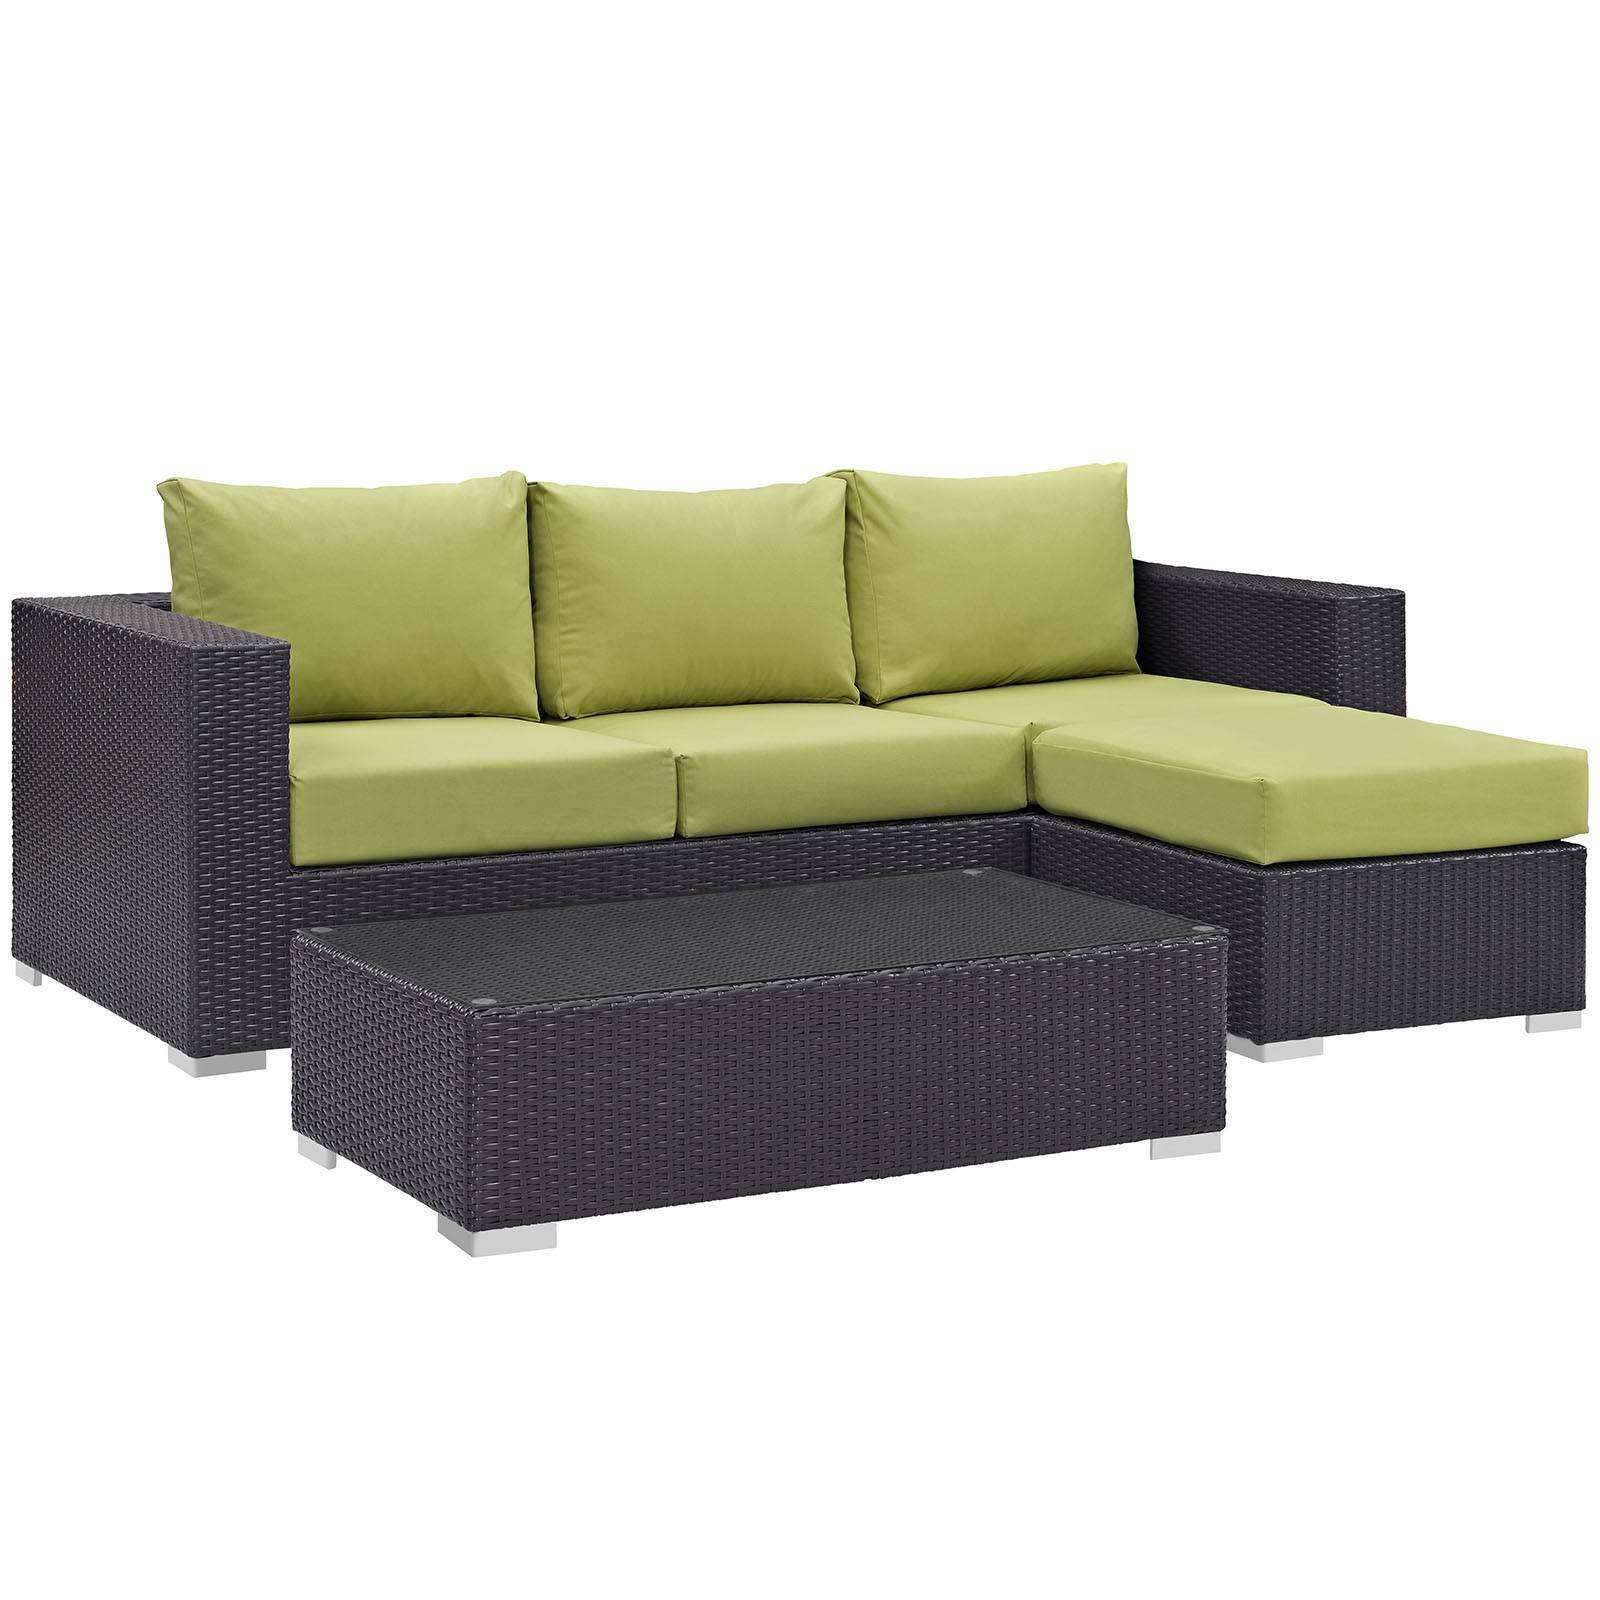 rcwilley rc store view furniture outdoor tortola linen sofas jsp patio willey sectional sc piece sofa